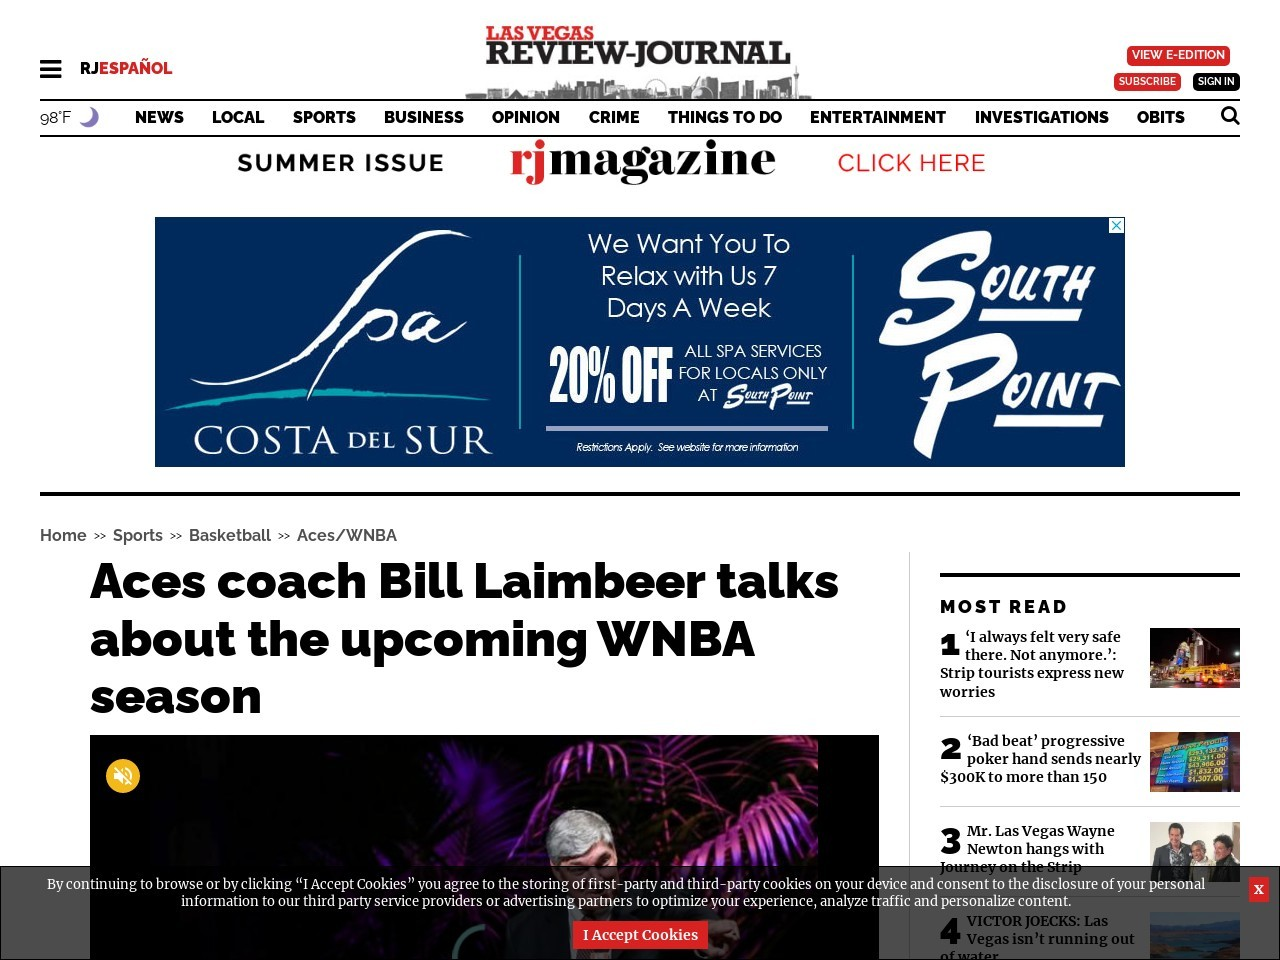 Aces coach Bill Laimbeer talks about the upcoming WNBA season